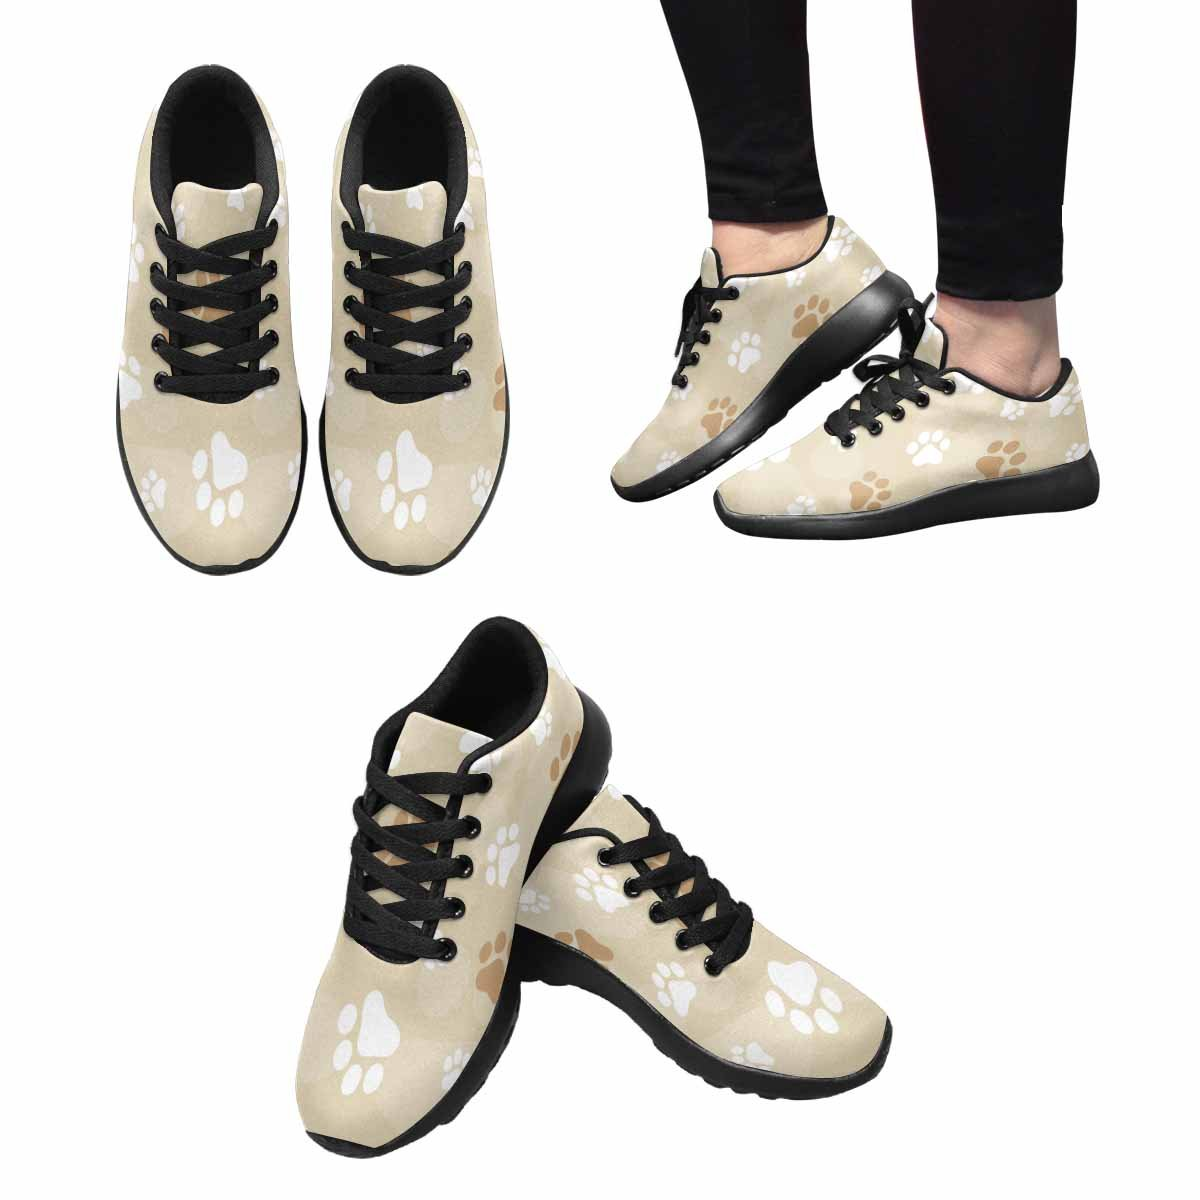 InterestPrint Women's Jogging Running Sneaker Lightweight Go Easy Walking Comfort Sports Running Shoes Dog Paw Prints with Brown Color 6 B(M) US